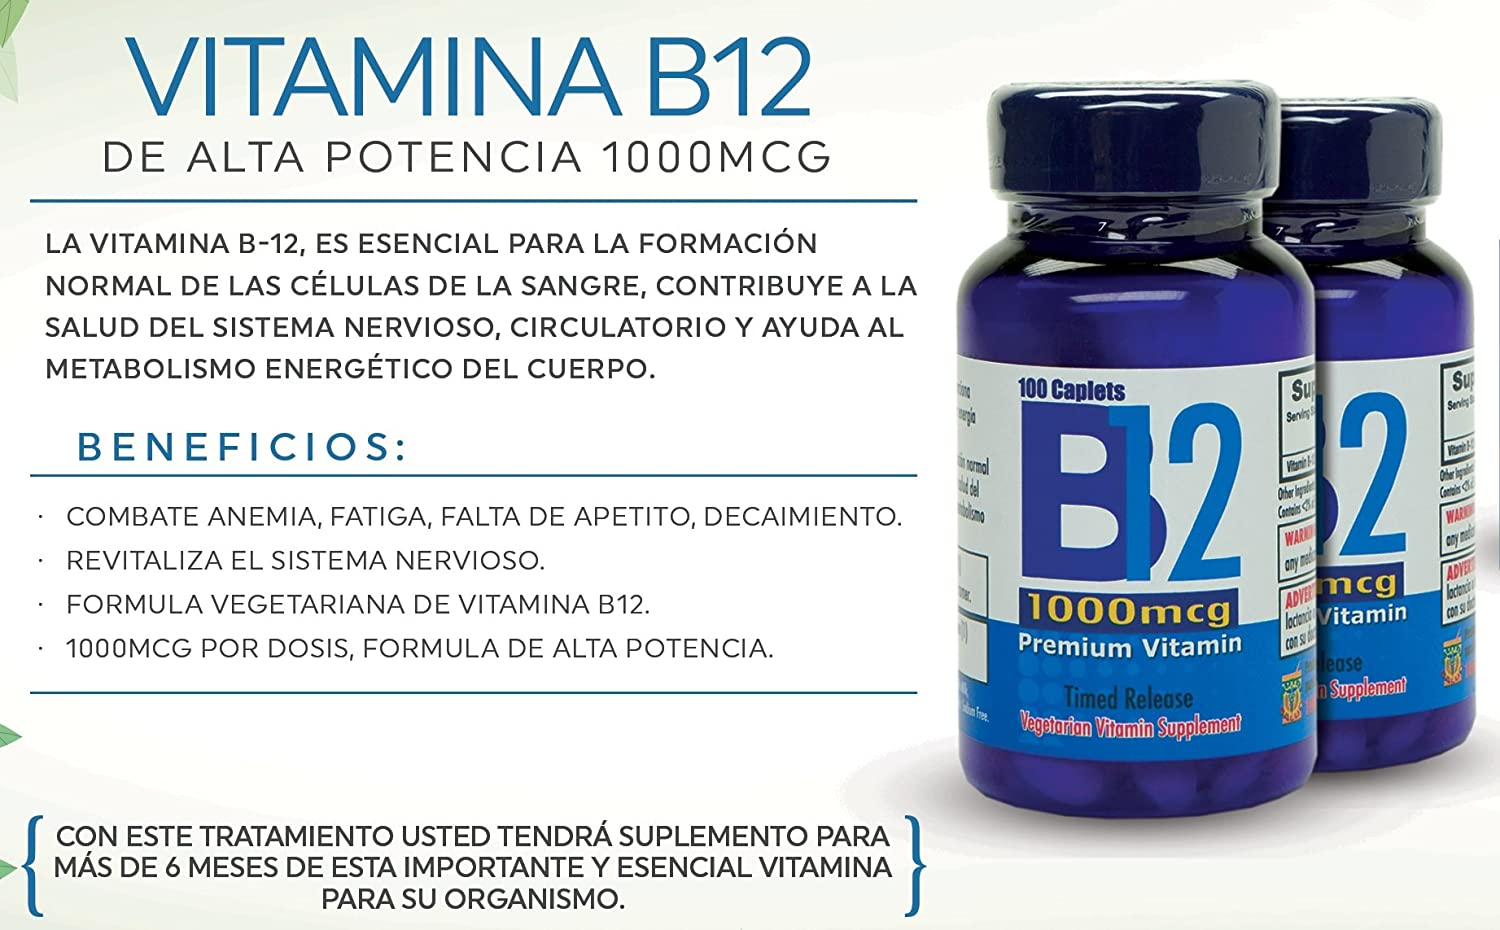 Amazon.com: Vitamina B12 de alta potencia, 1000mcg, set de 2 ...